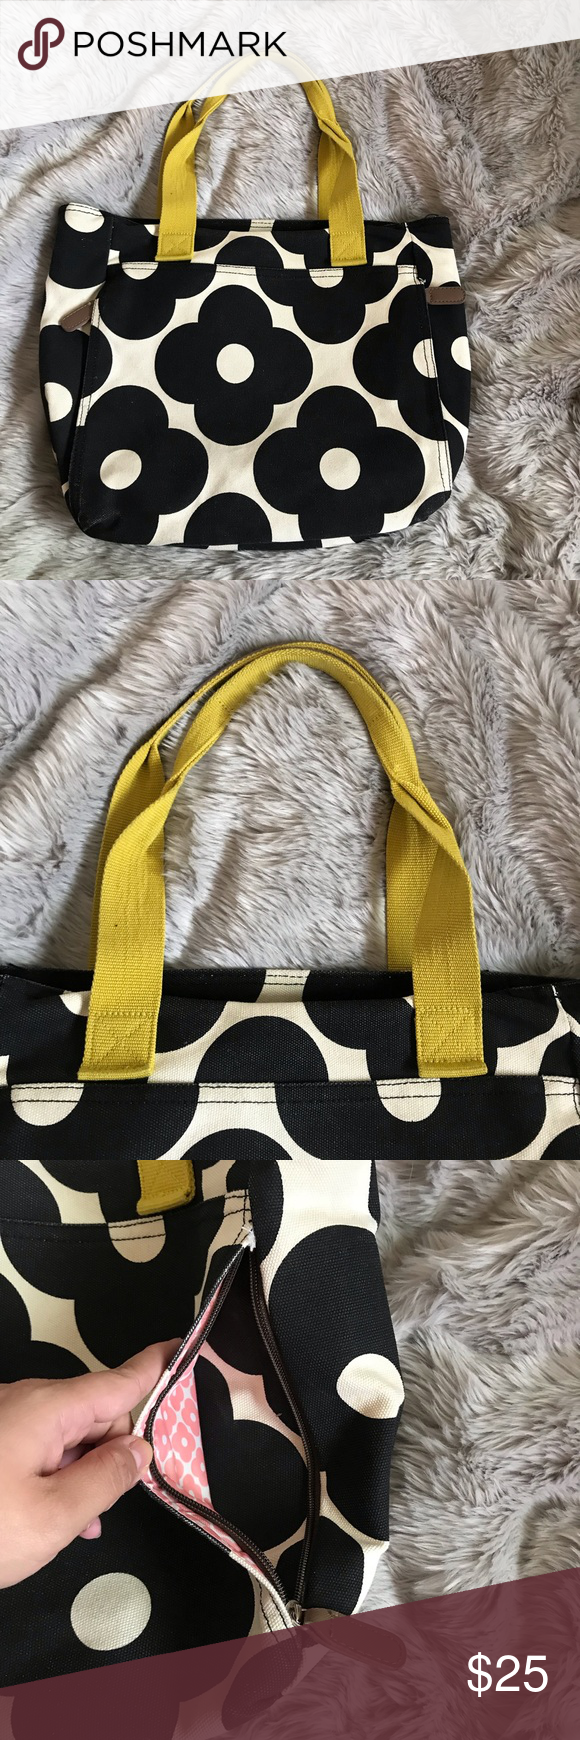 856cd339c934 Orla Kiely for Target black cream Yoga tote Orla Kiely for Target Yoga tote  Zipper in back to slide through yoga Mat Black and cream   offwhite canvas  ...